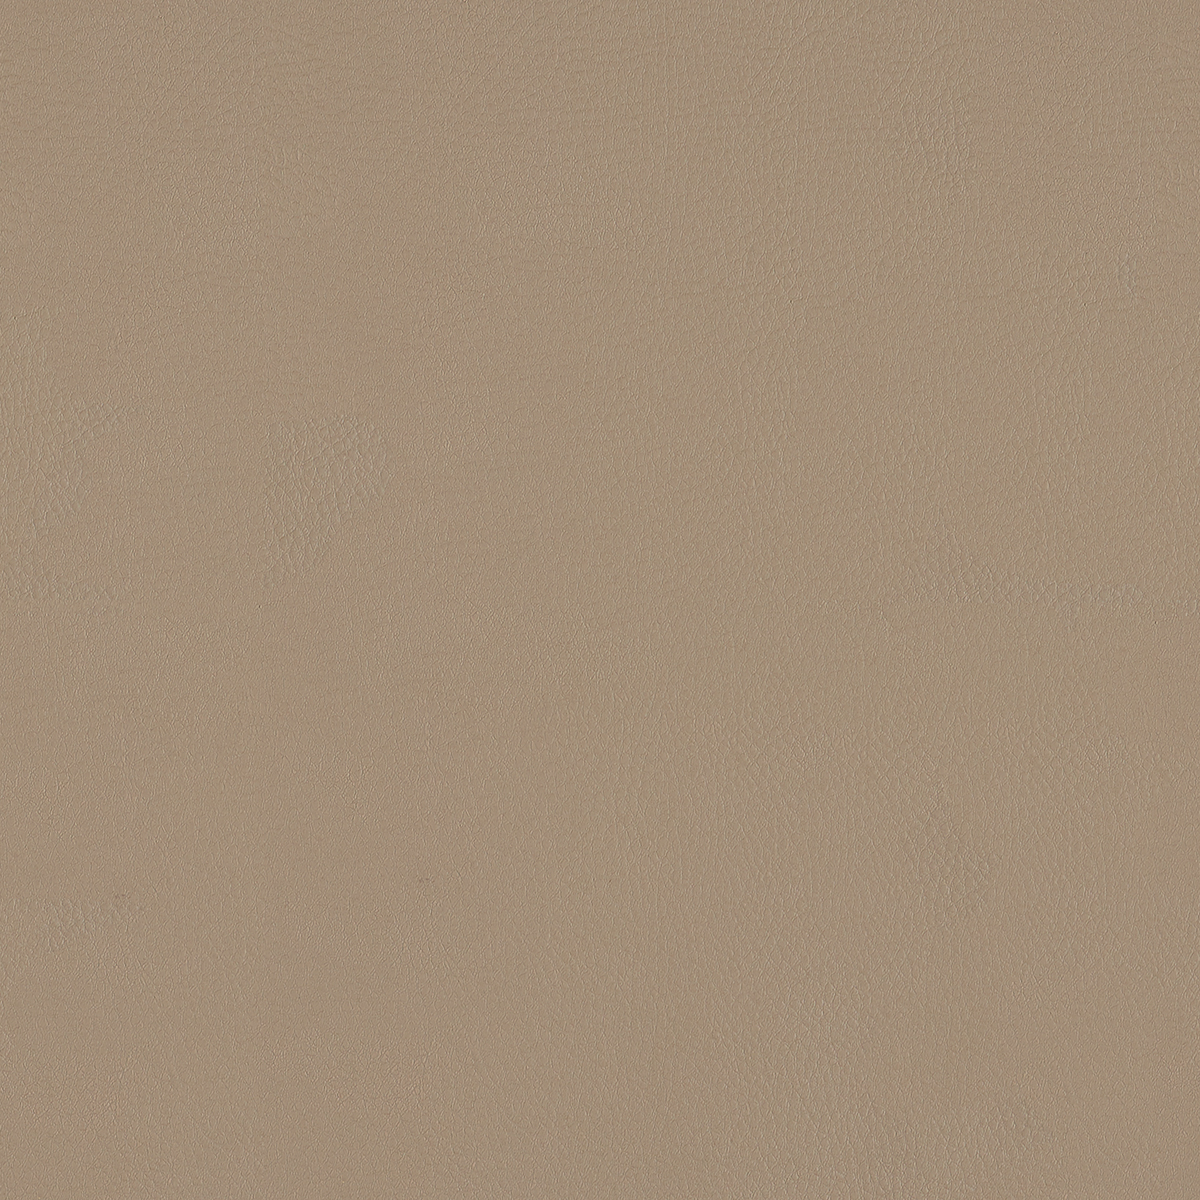 Top Coat - Stoneware - 4083 - 04 - Half Yard Tileable Swatches